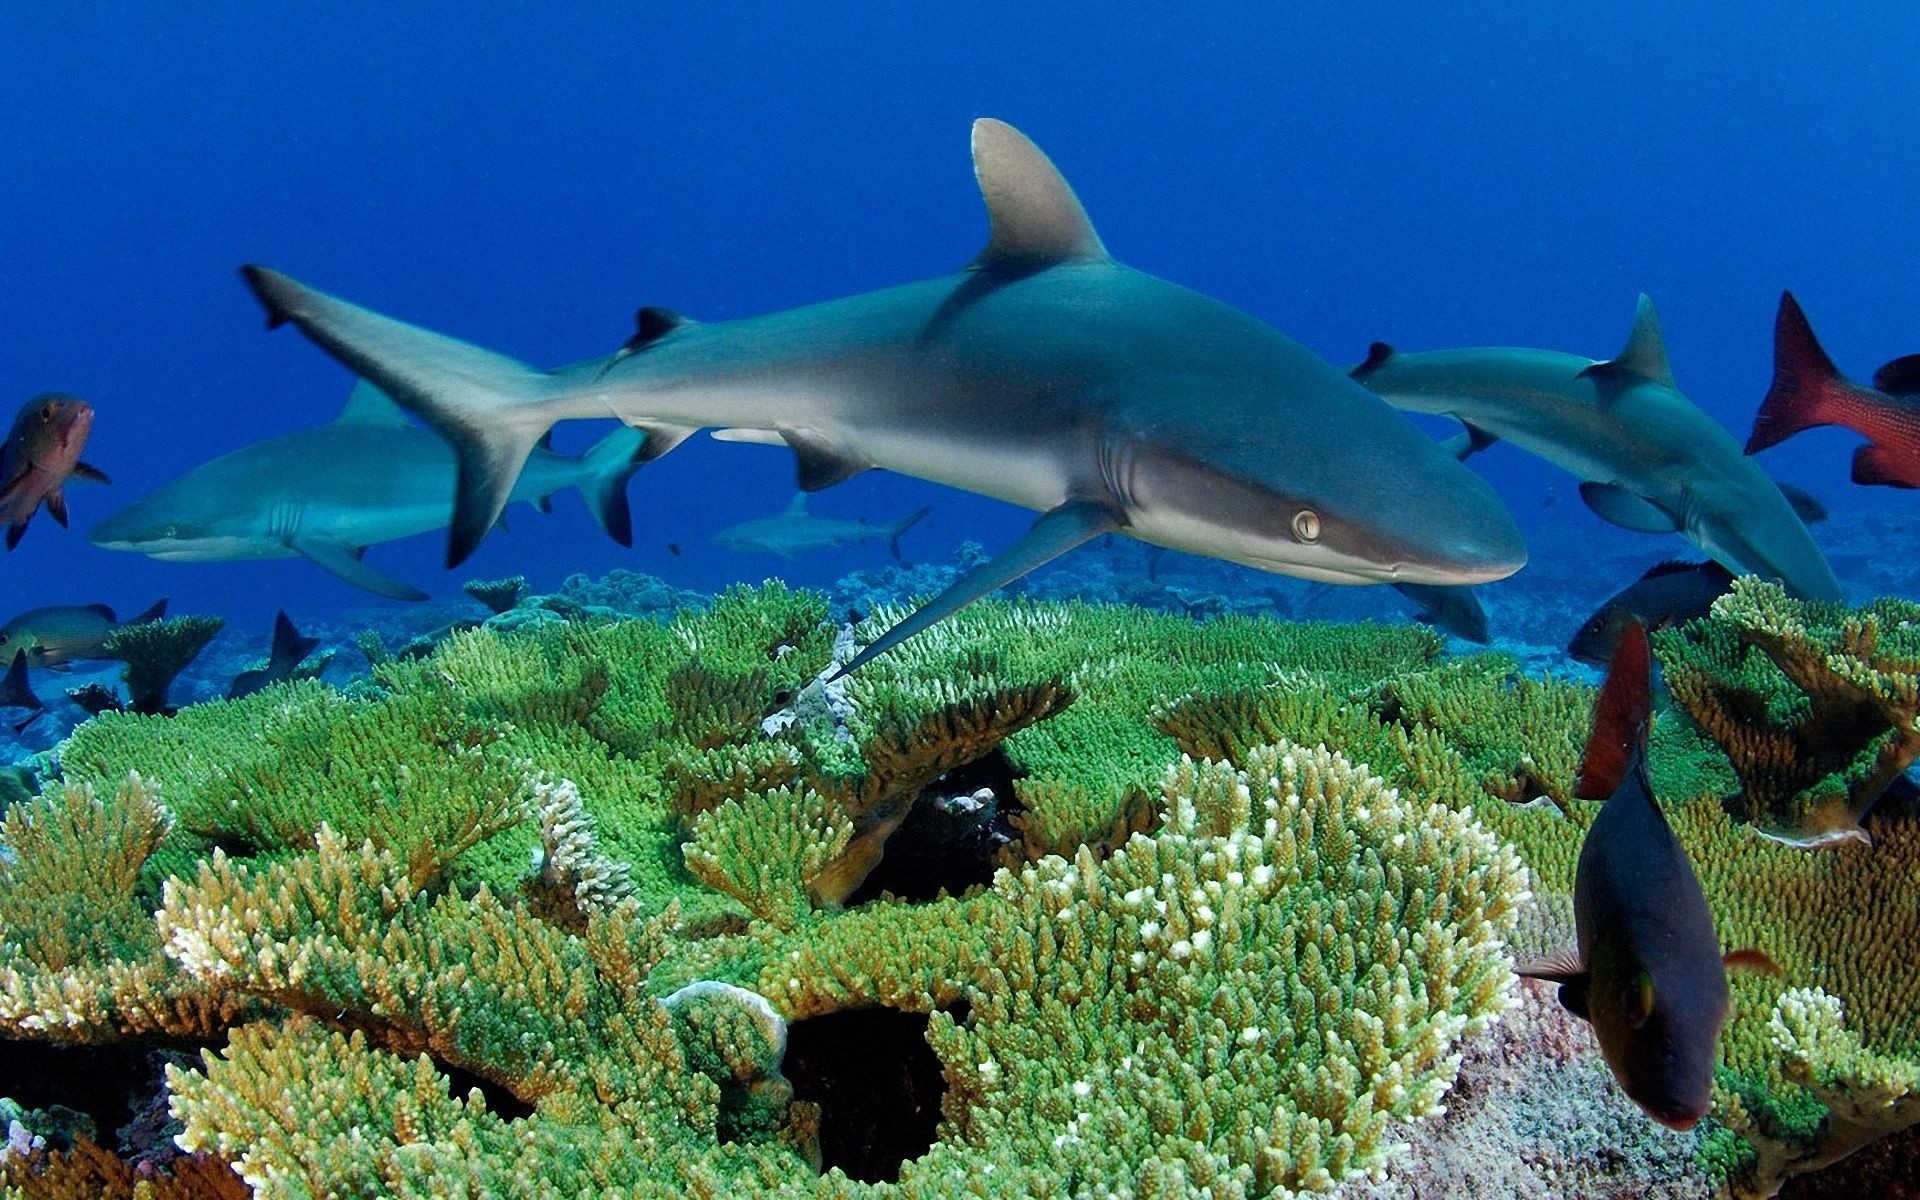 1920x1200 Gray reef sharks and red snappers hover above a patch of table coral at  Kingman Reef, Pacific Ocean, waiting for prey fish to emerge.